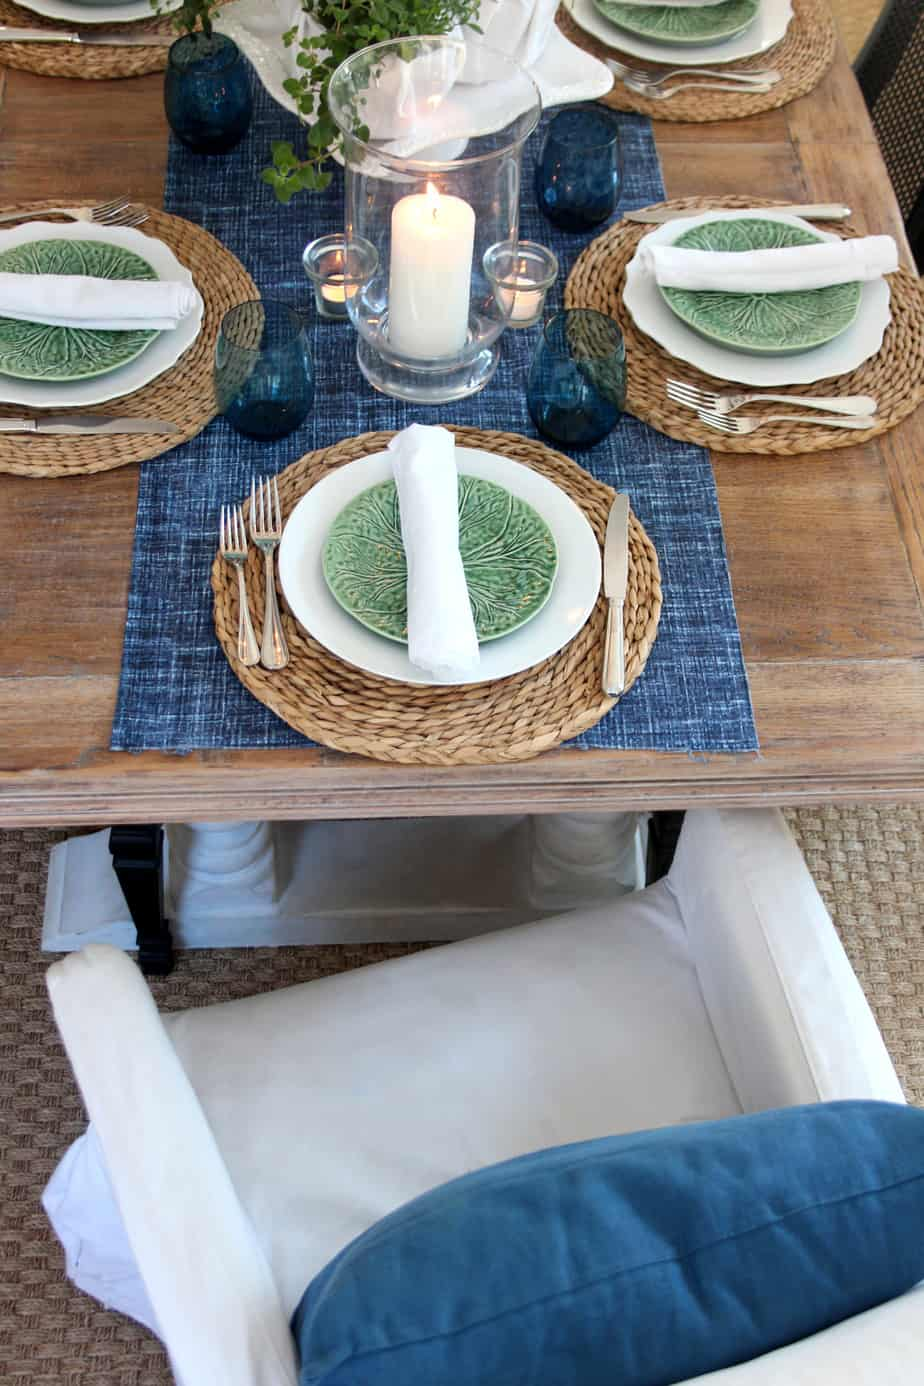 Fresh herbs give this blue and green tablescape a spring-like feel.